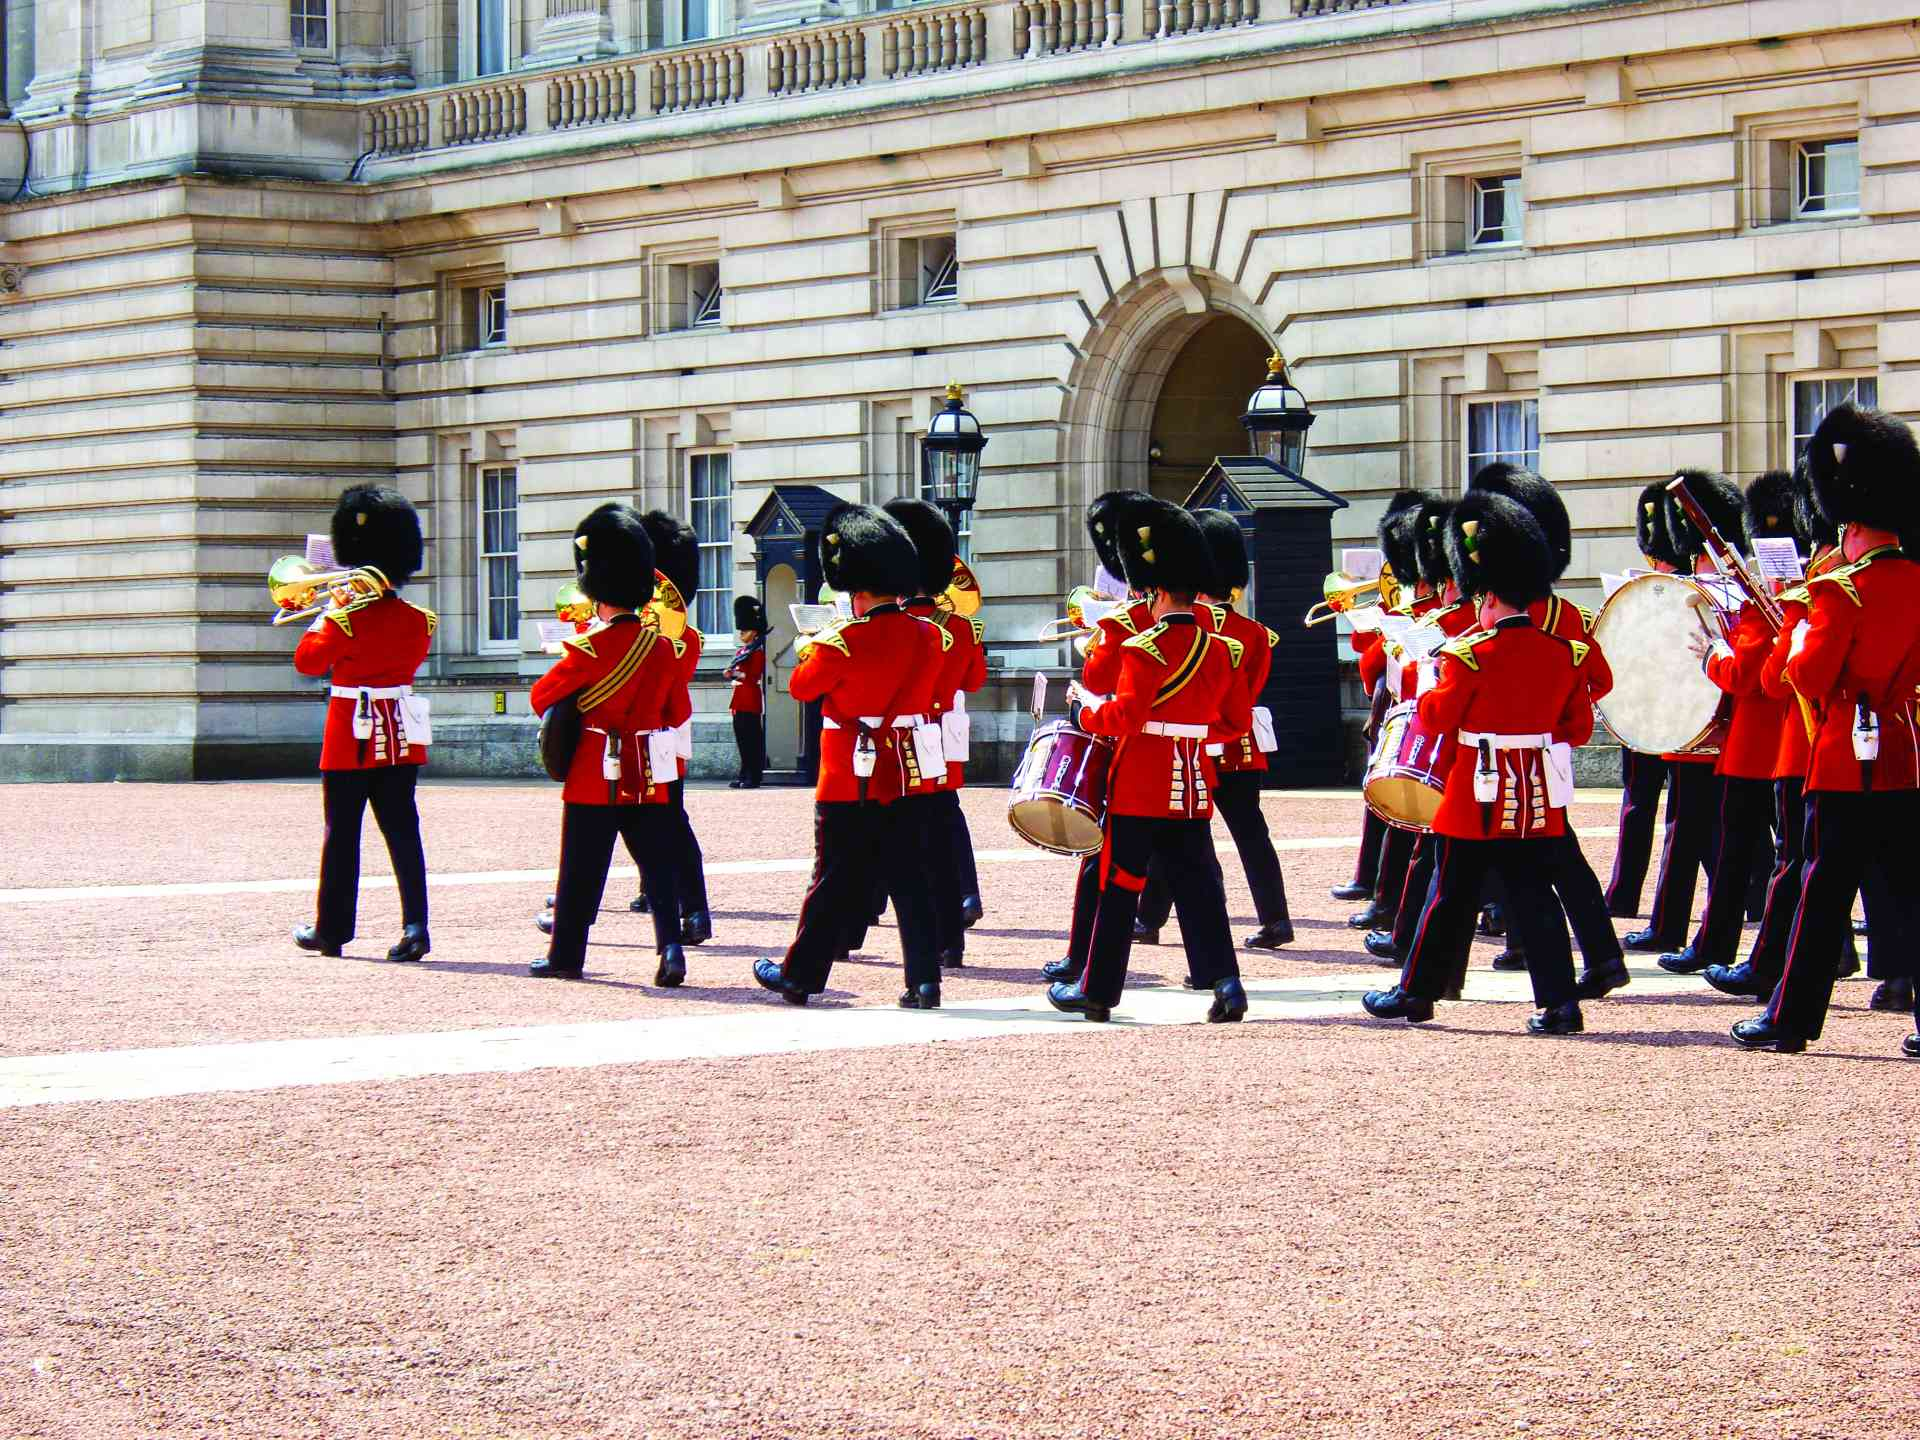 Queen's Guards, England by Victoria Hearn